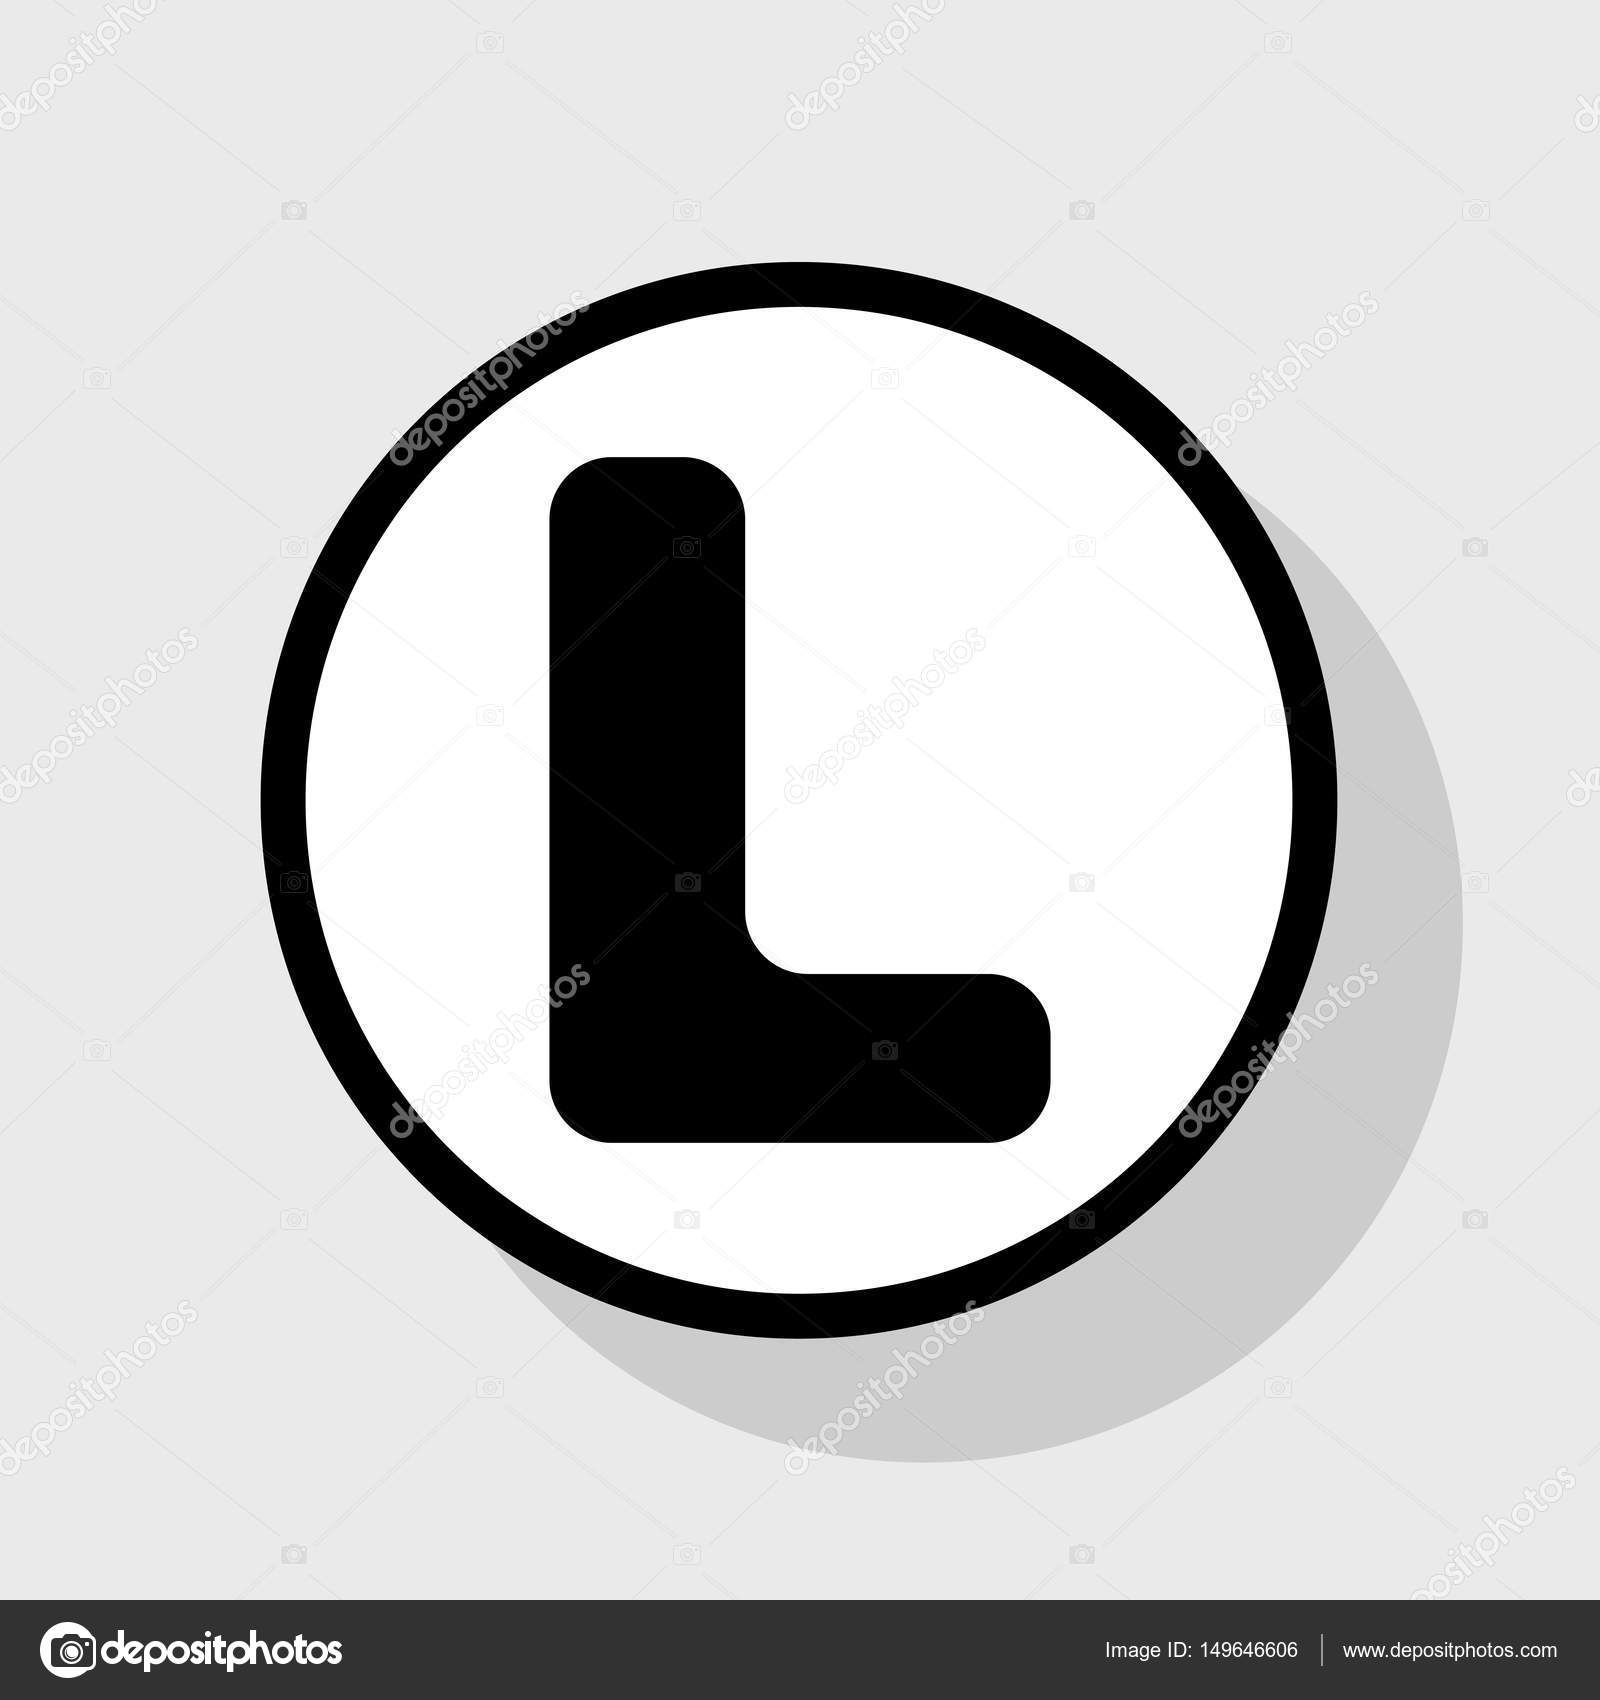 Letter L sign design template element. Vector. Flat black icon in ...